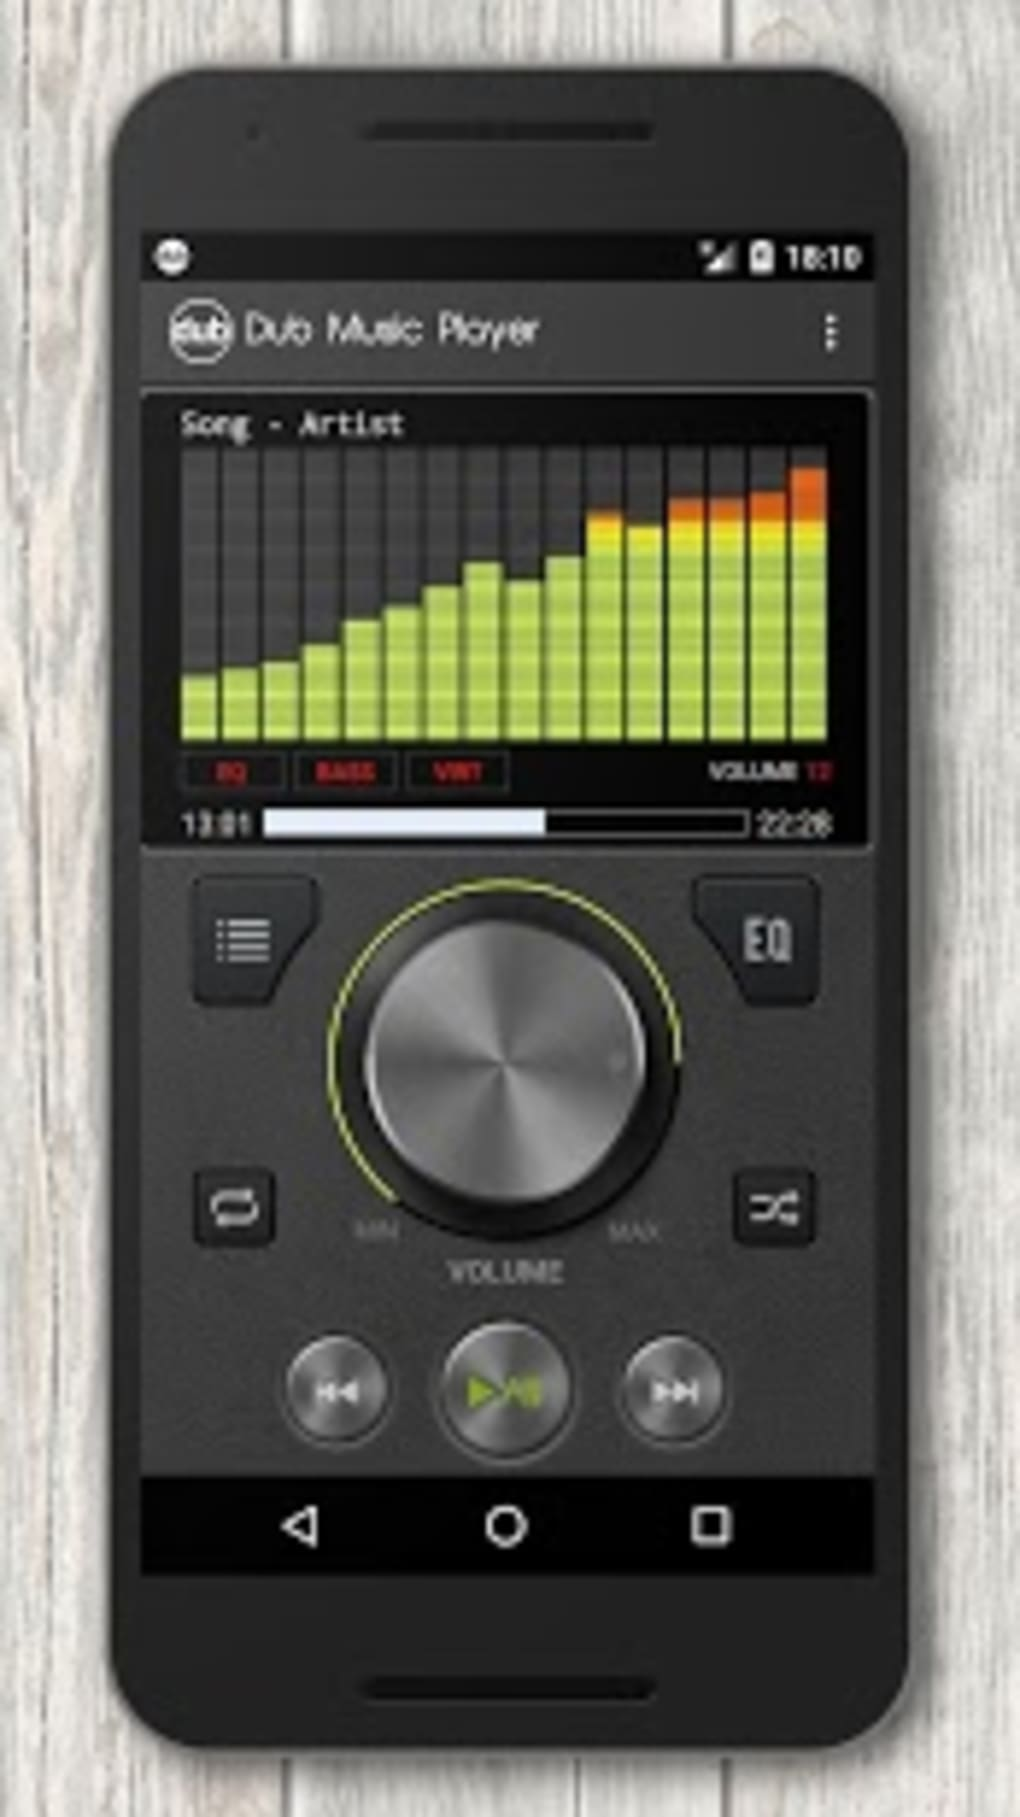 descargar dub music player para android